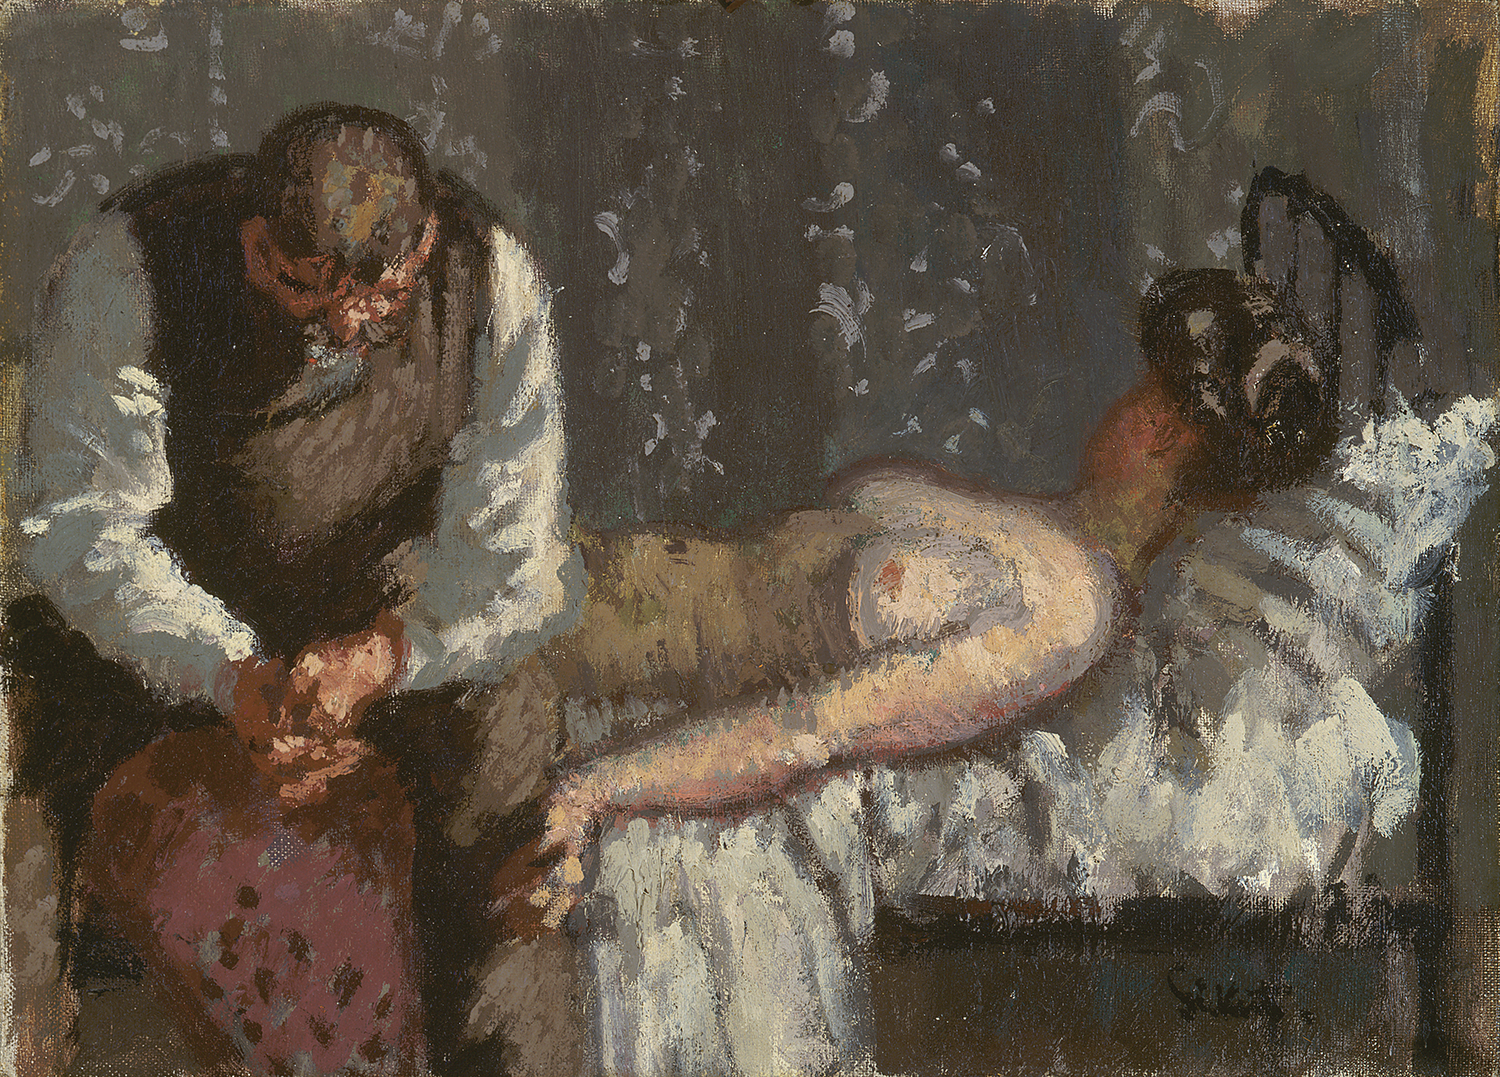 Walter Richard Sickert, The Camden Town Murder or What Shall We Do for the Rent?, c. 1908. Yale Center for British Art, New Haven